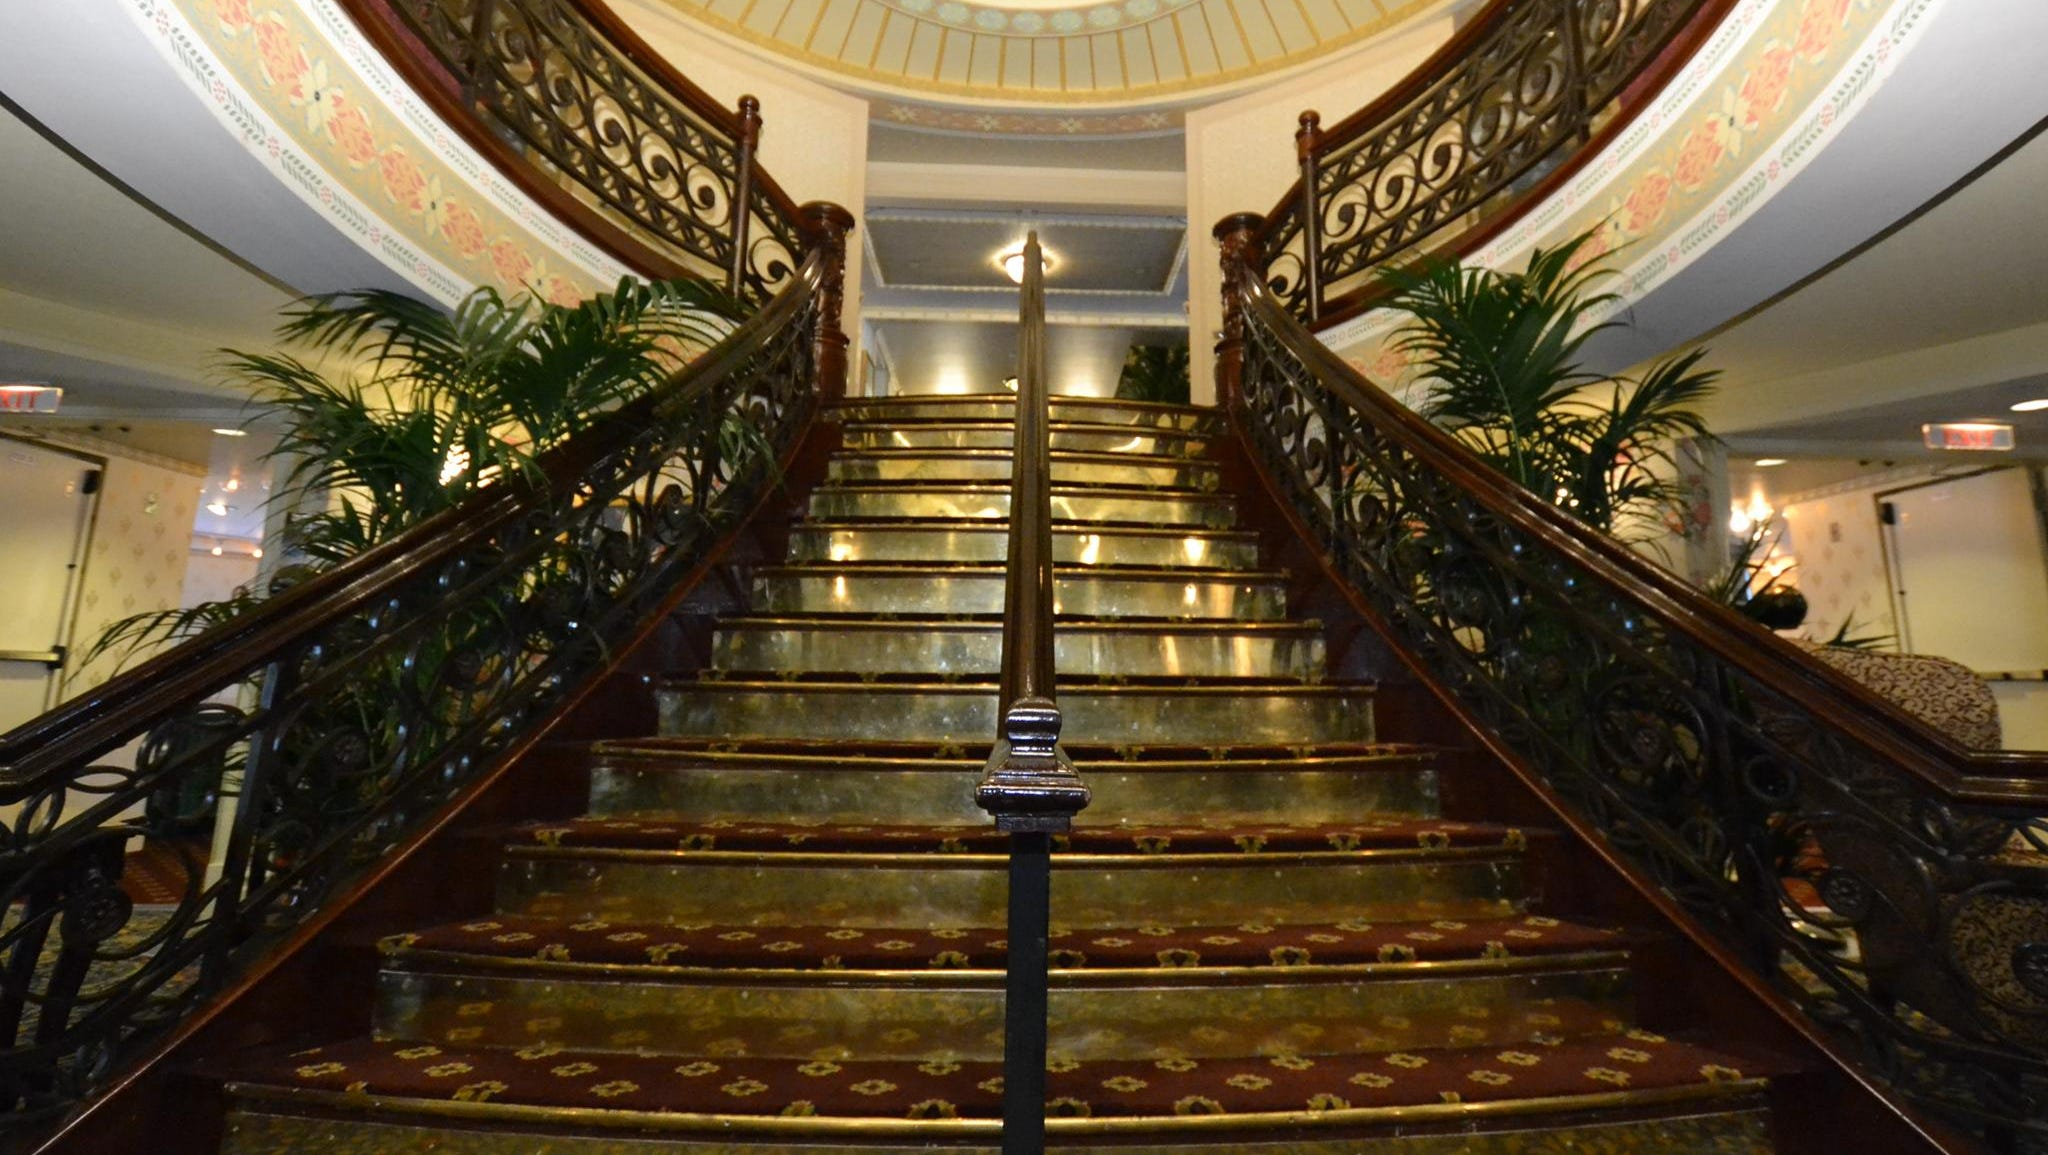 A grand staircase rises from the Lounge to the American Queen's Purser's Lobby.